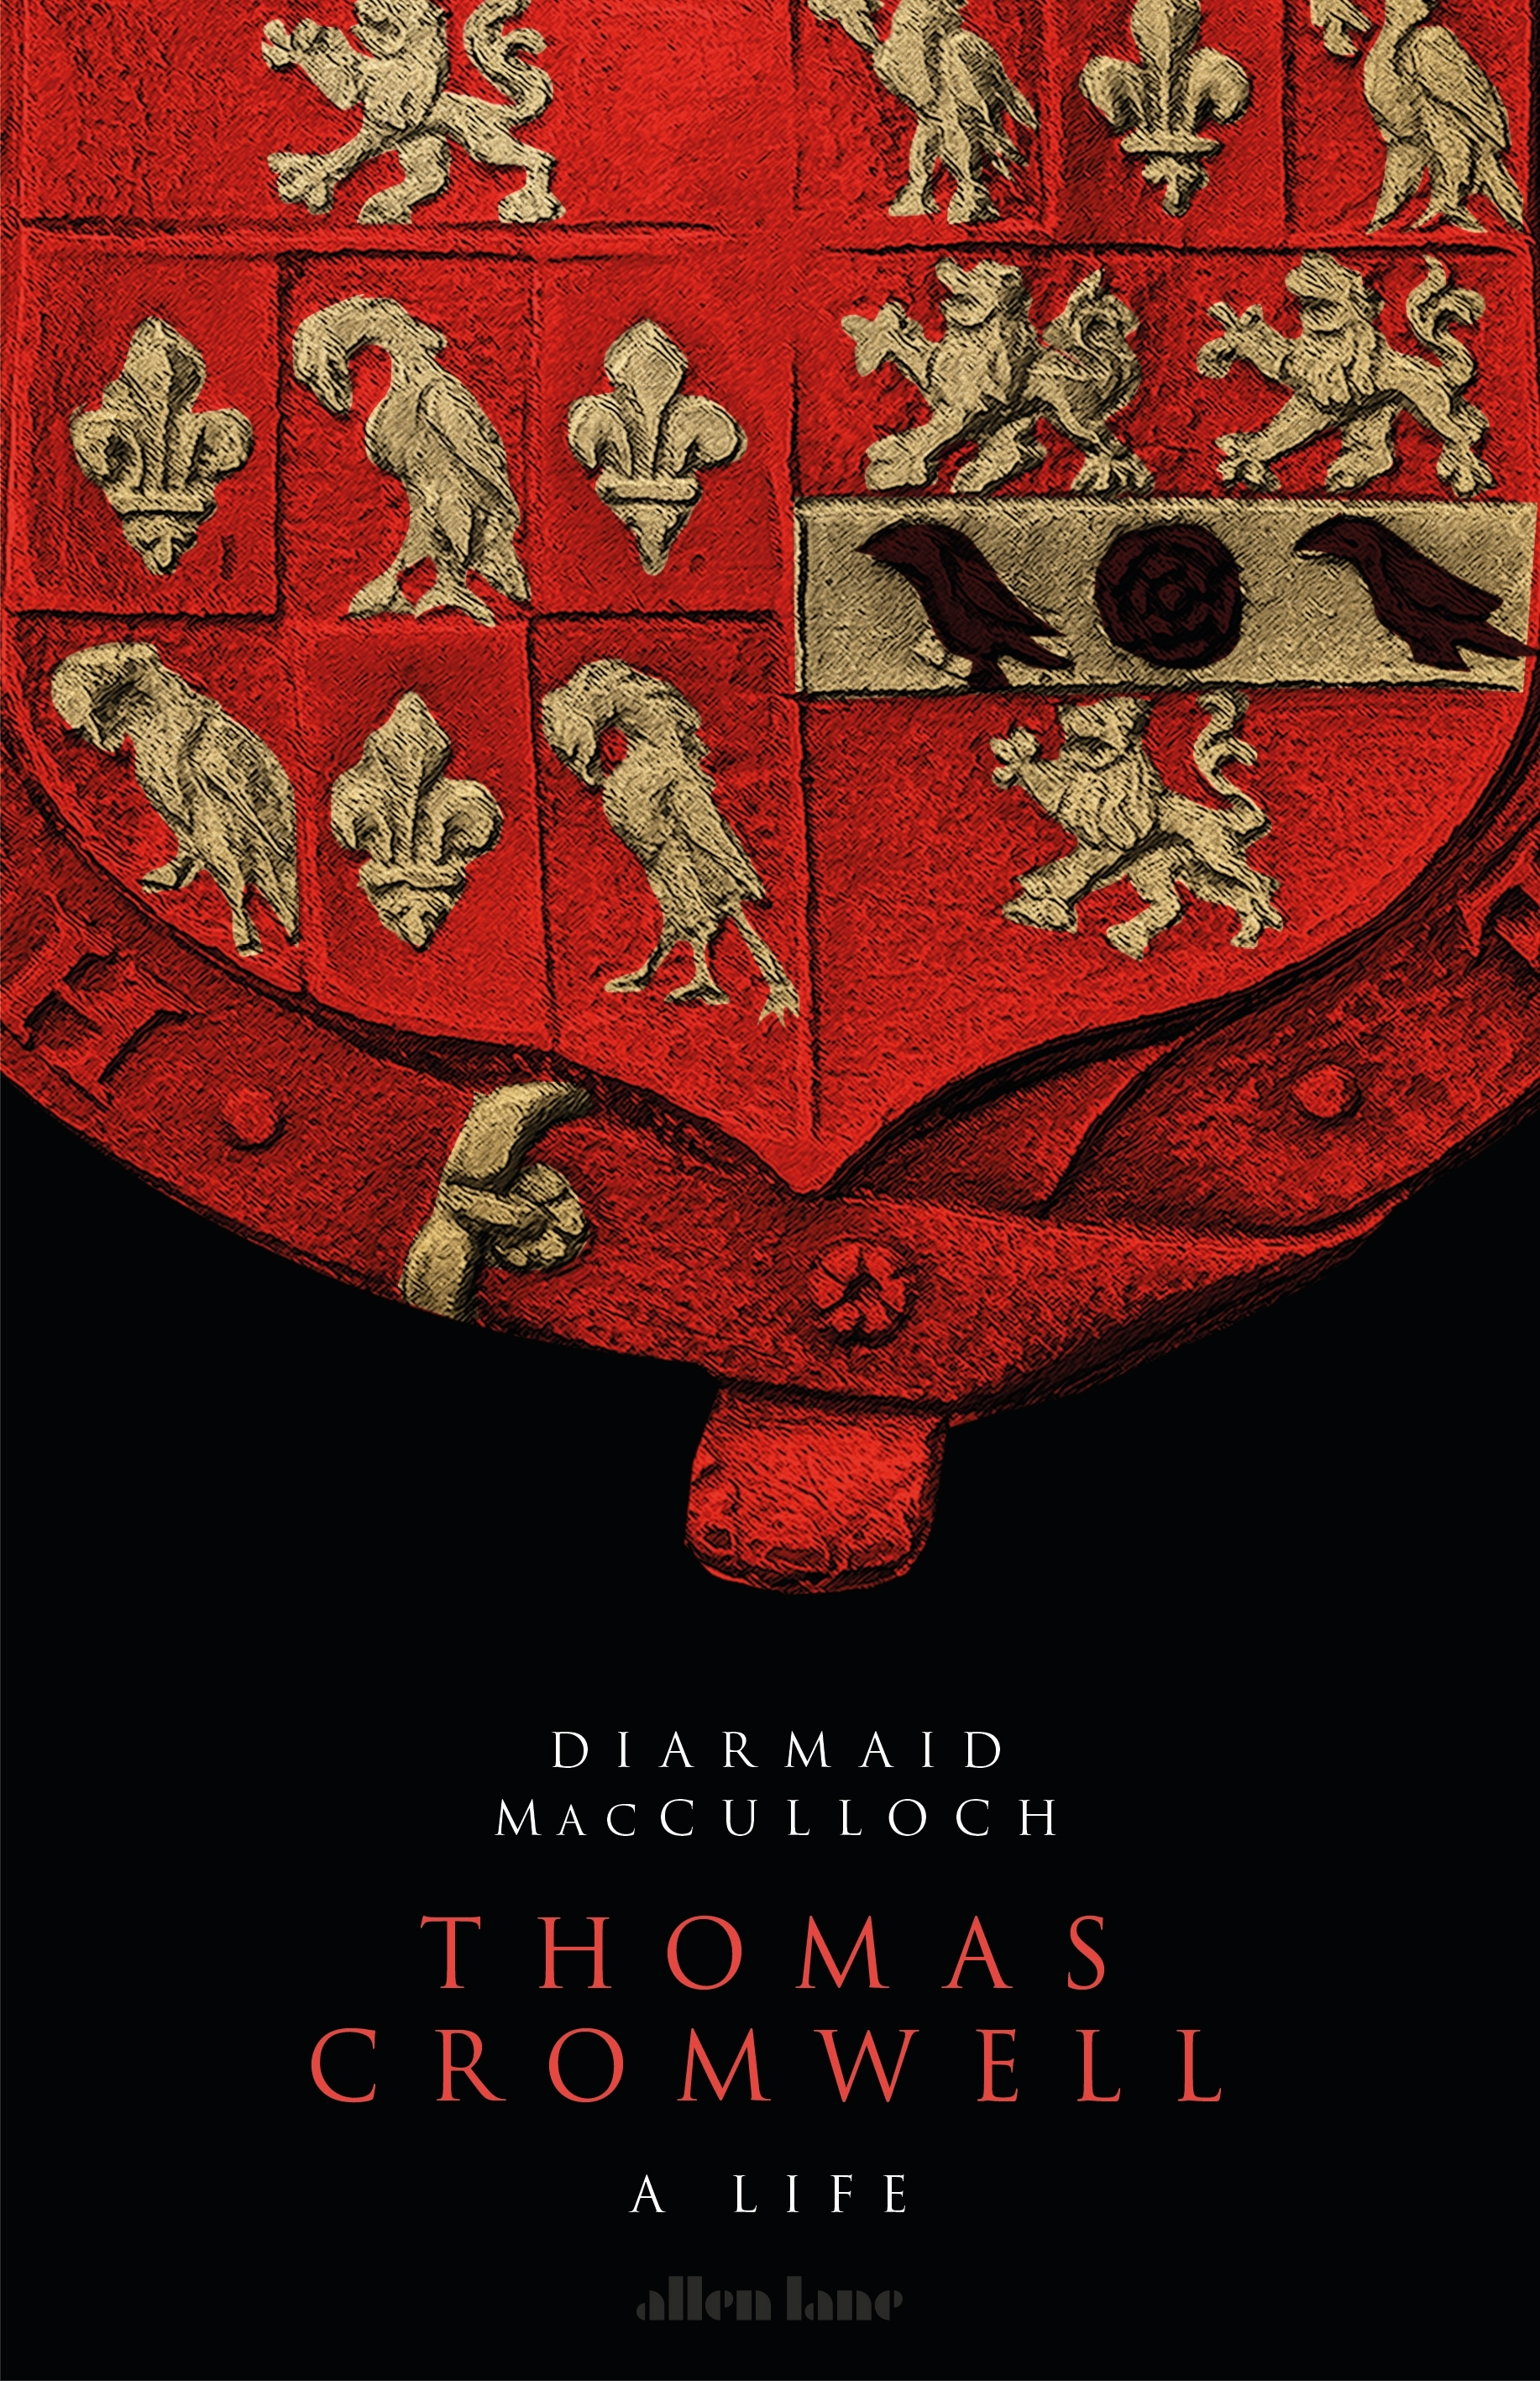 Thomas Cromwell by Diarmaid MacCulloch, ISBN: 9781846144295